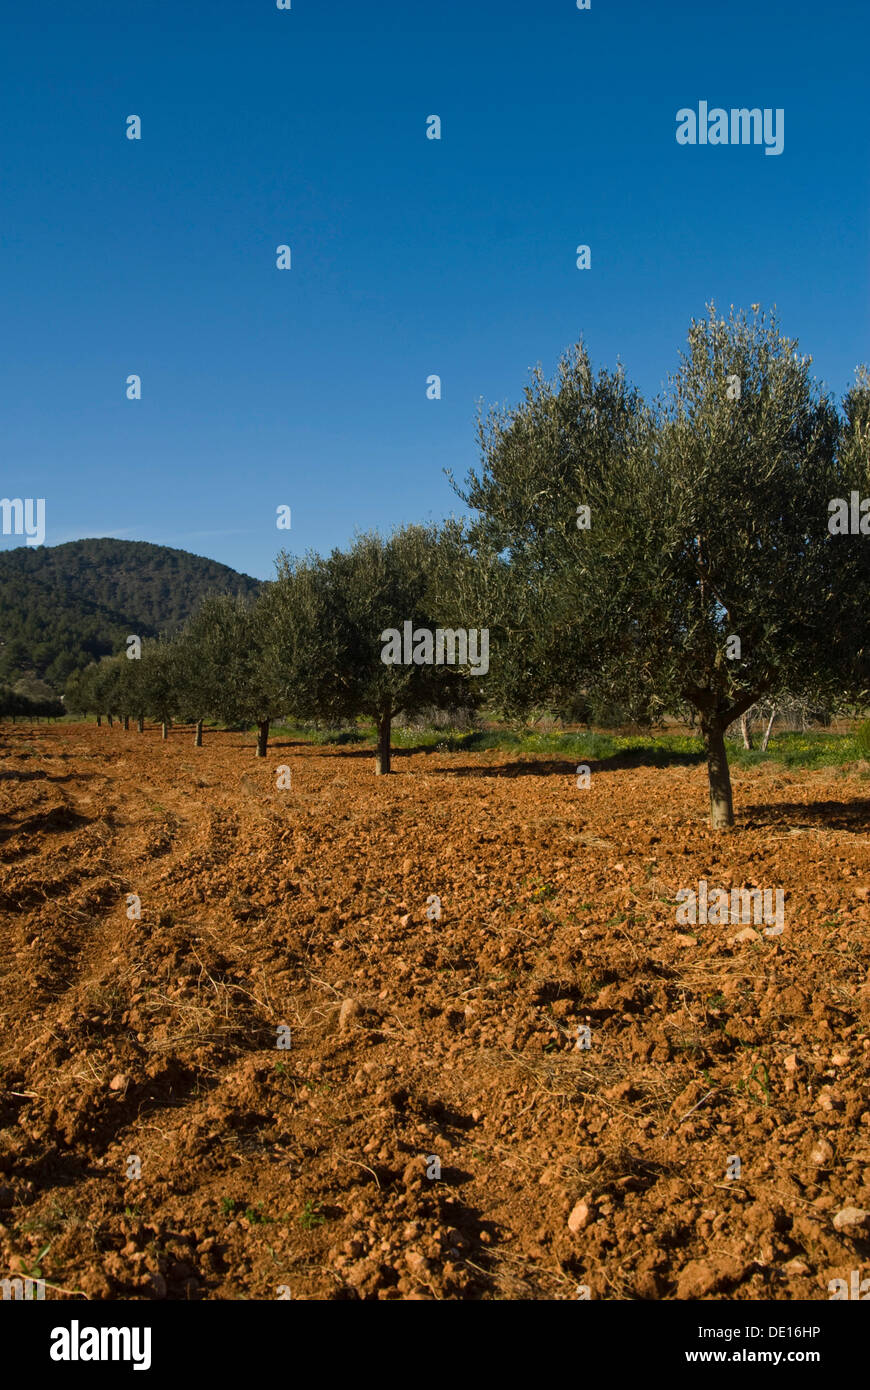 Grove In Agricultural Area Stock Photos & Grove In Agricultural Area ...